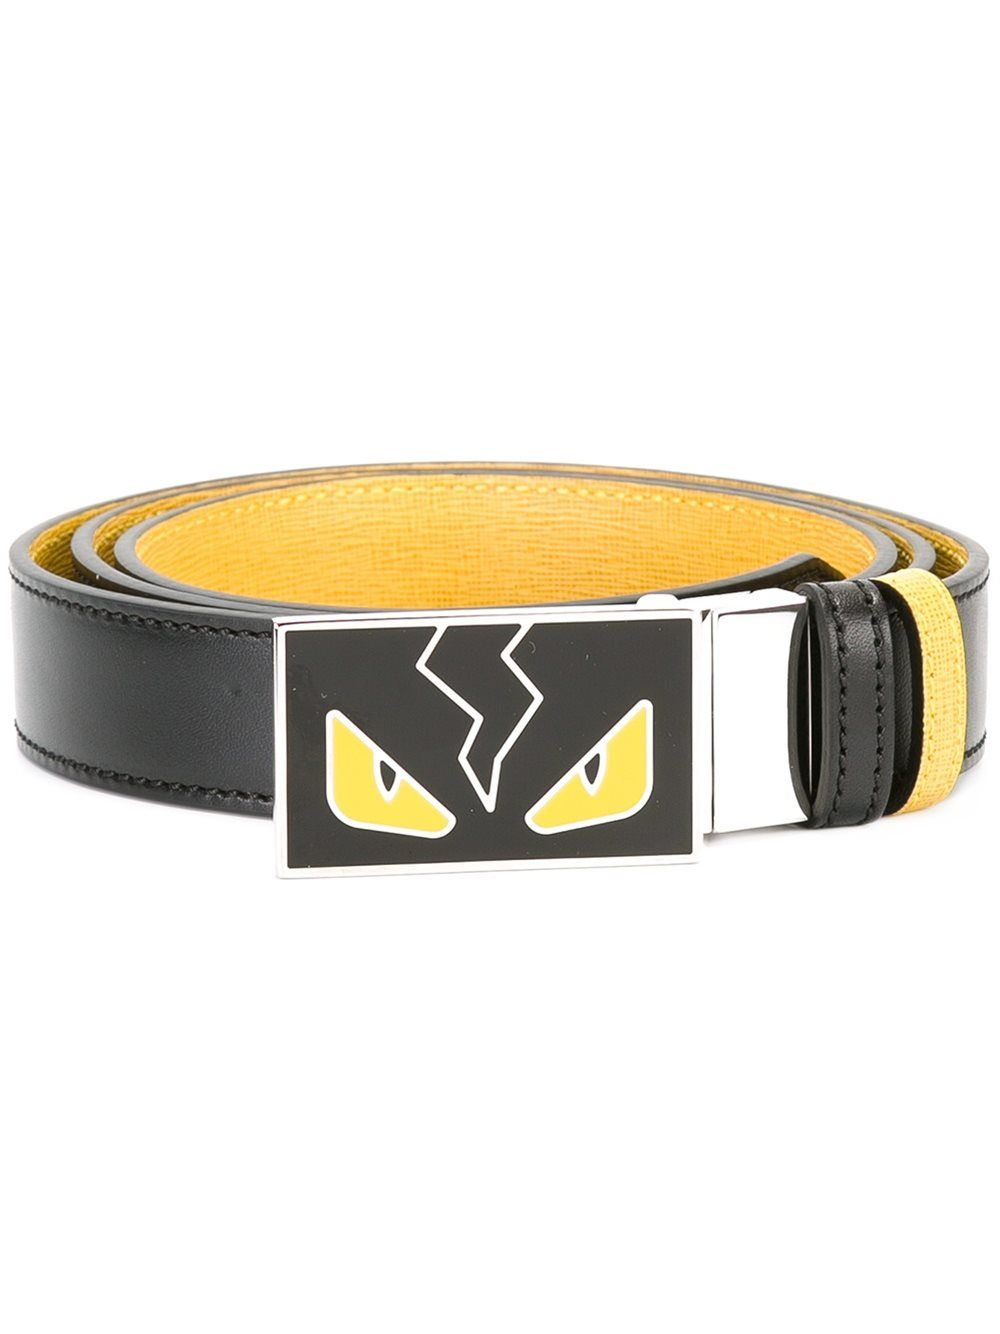 #fendi #men #bagbugs #black #yellow #belt #style #fashion ...